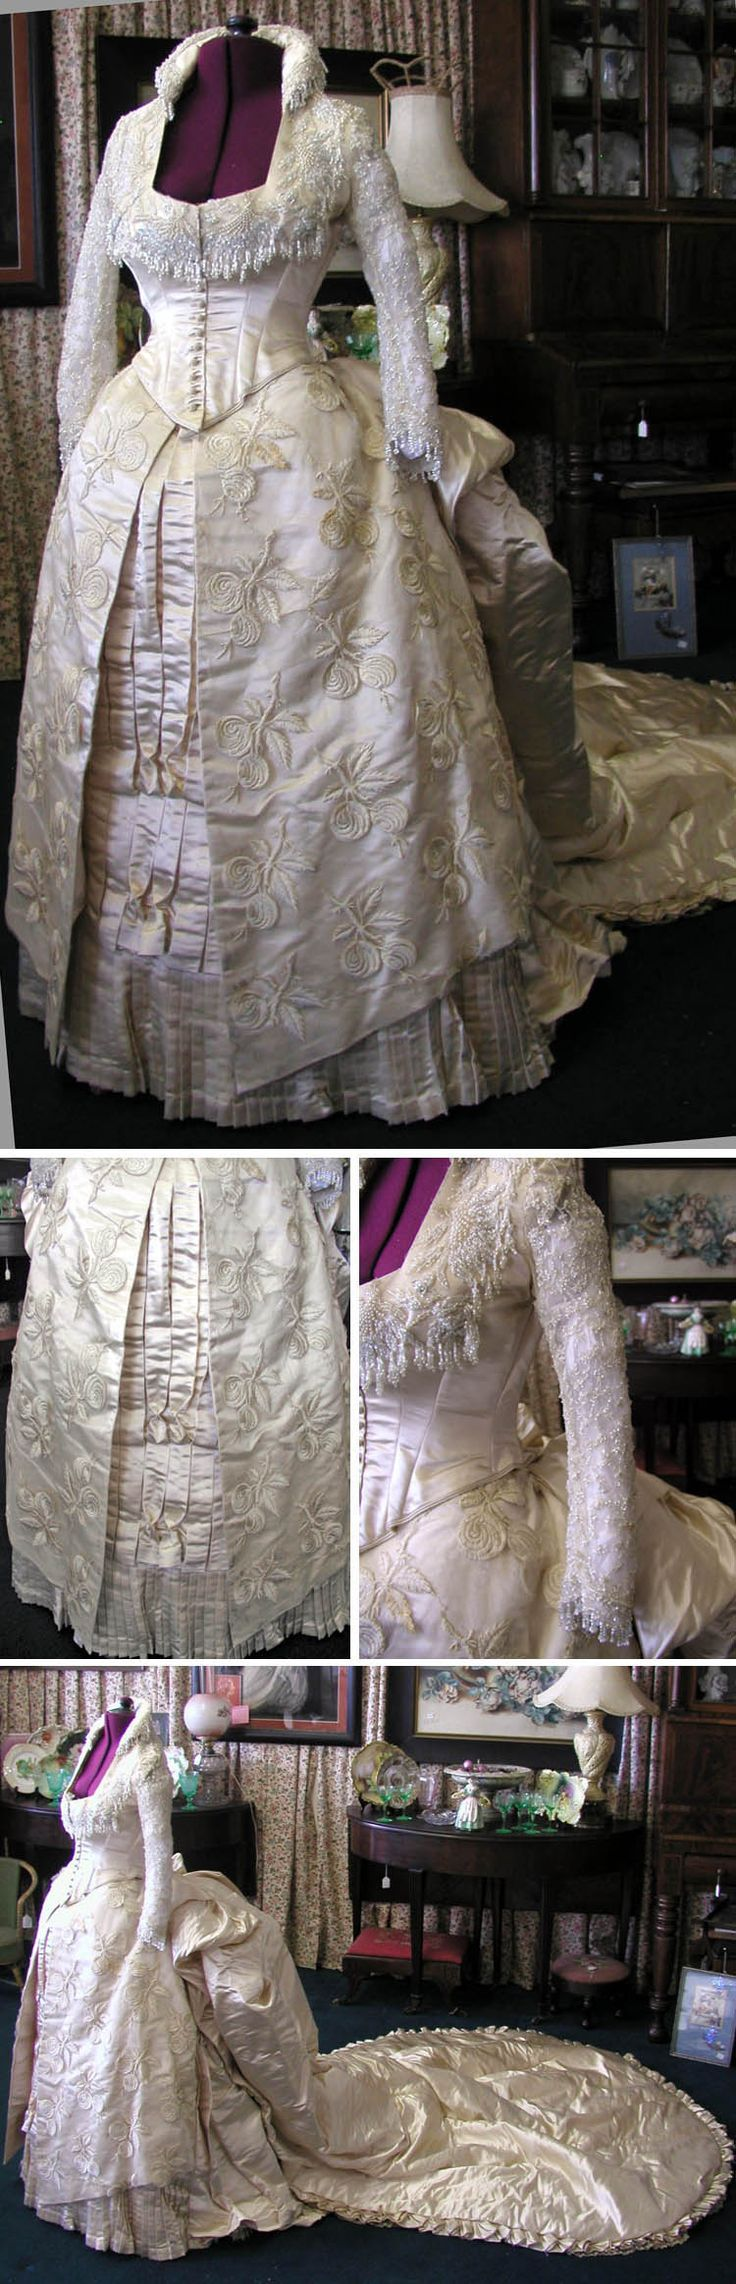 Wedding gown, circa 1880s. Heavy ivory silk with beads. Silk-lined bodice has net sleeves trimmed with cream-colored bugle beads and pearls. Originally in the collection of the Brooklyn Museum. Via svpmeow1/ebay.